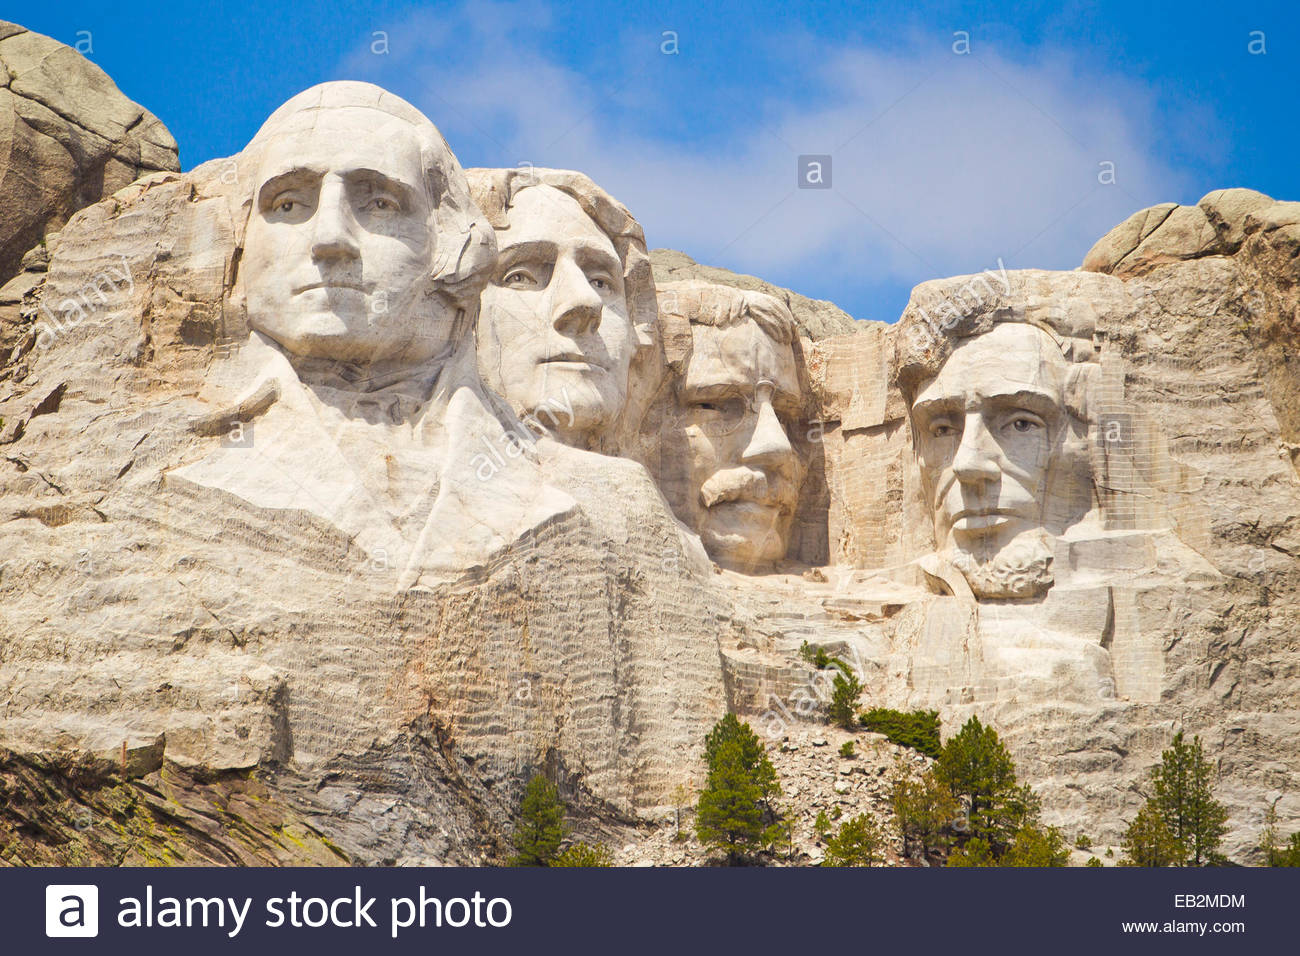 Low angle view of the sculpted images of American presidents Washington, Jefferson, Theodore Roosevelt, and Lincoln, - Stock Image